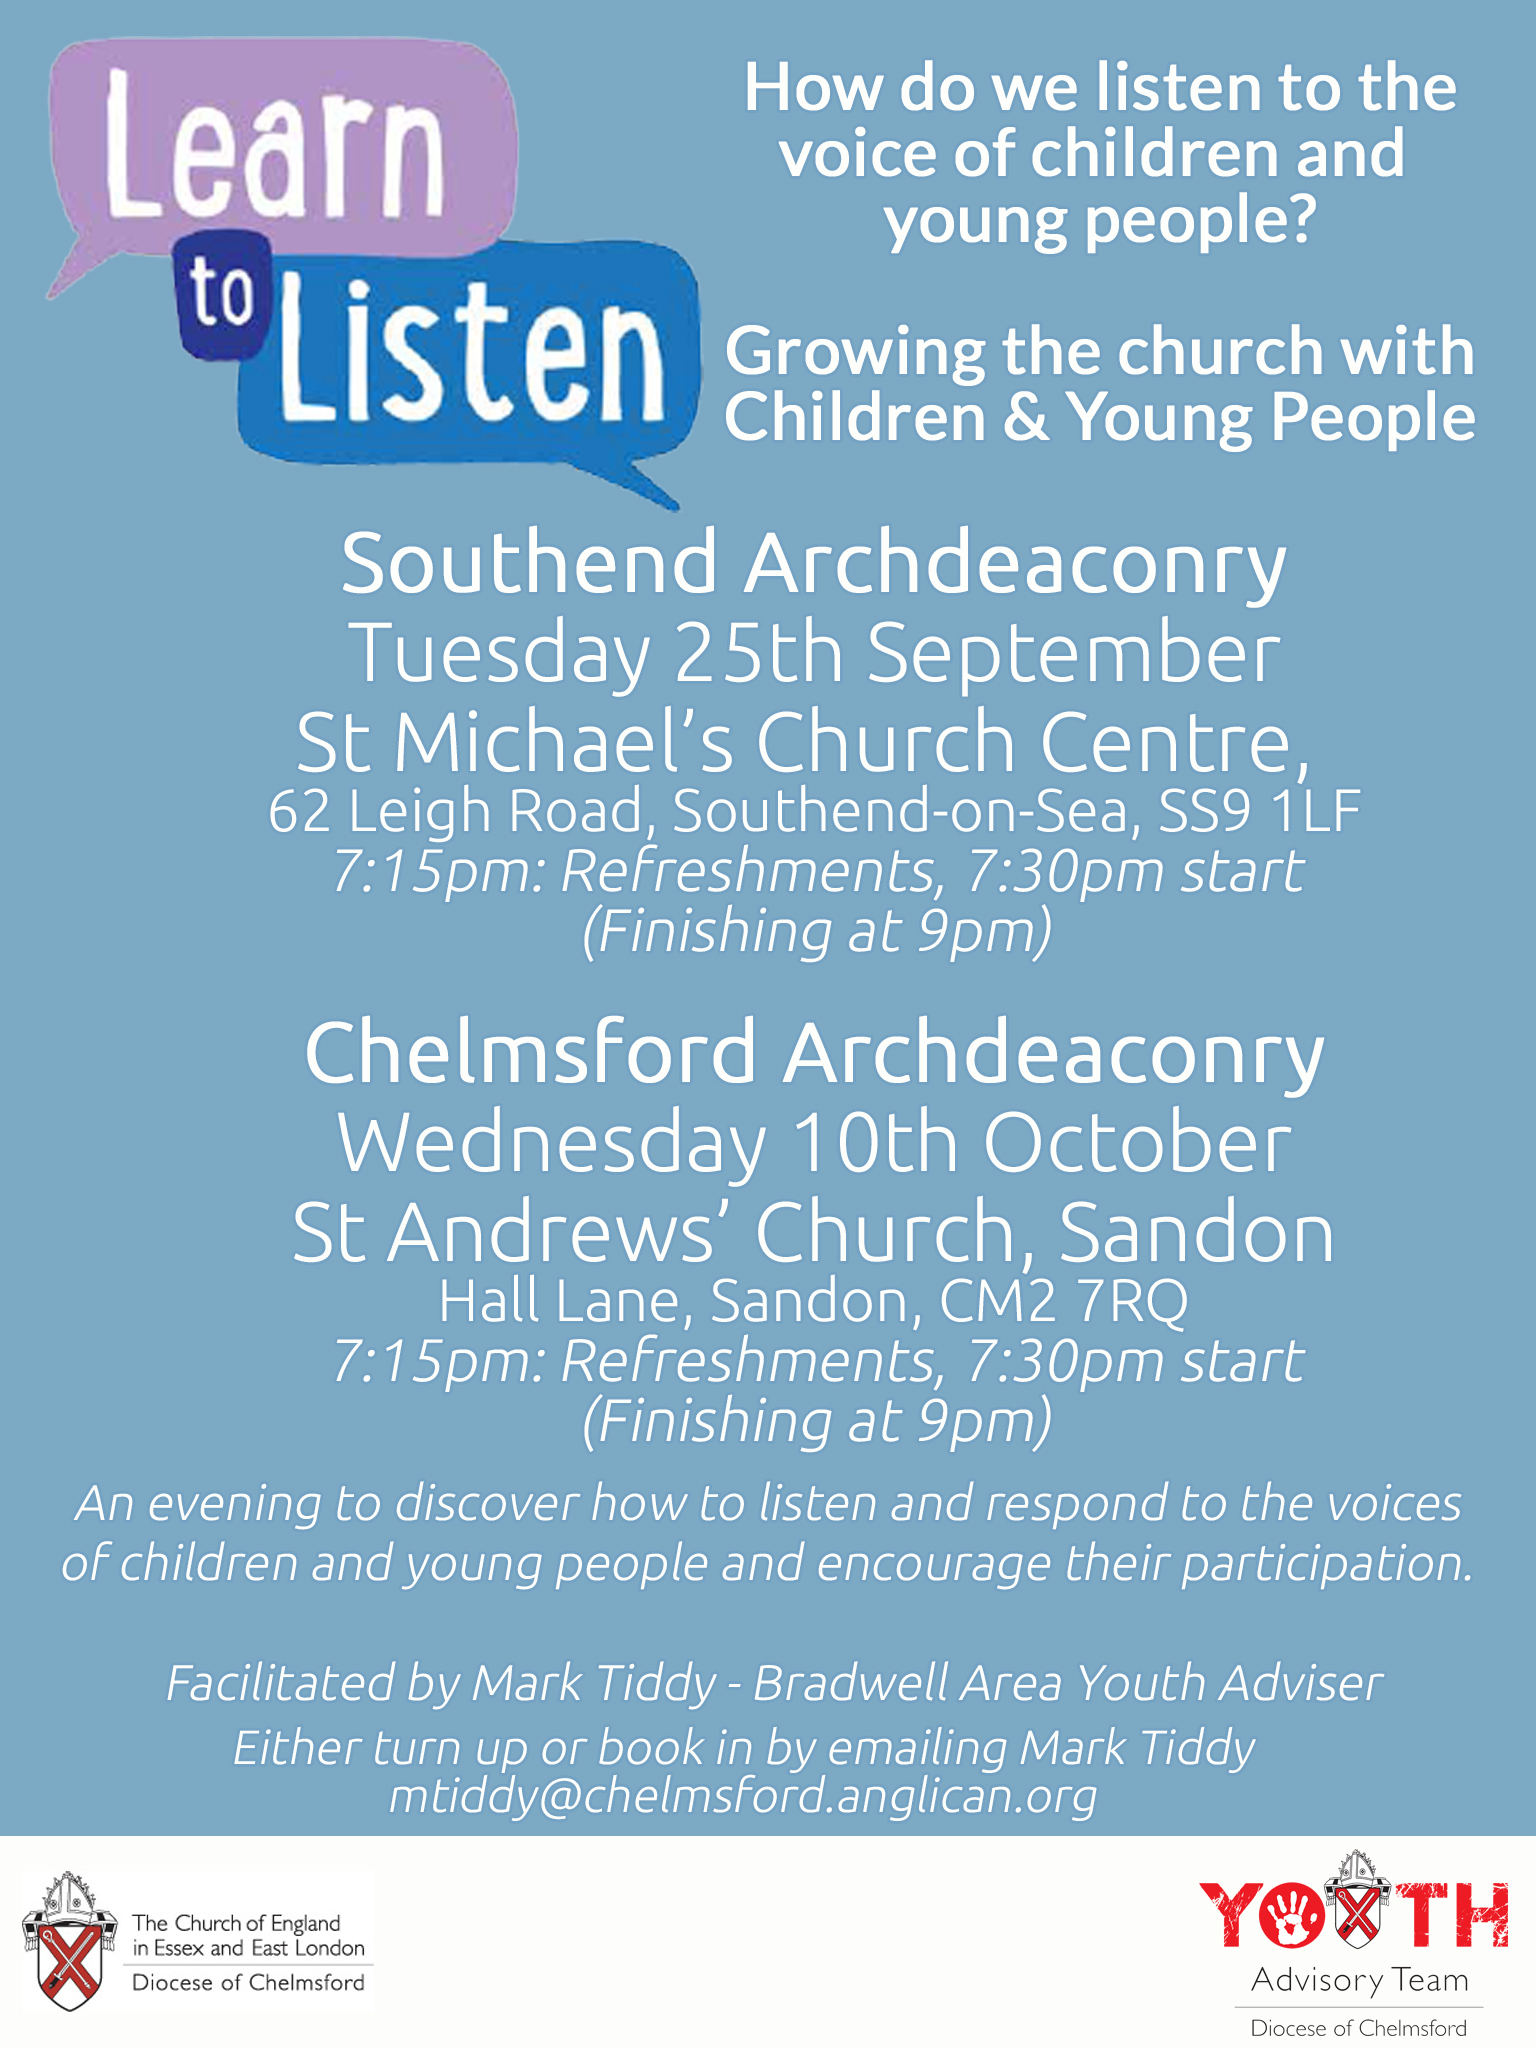 Learn to Listen - Training Evening (Southend Archdeaconry)